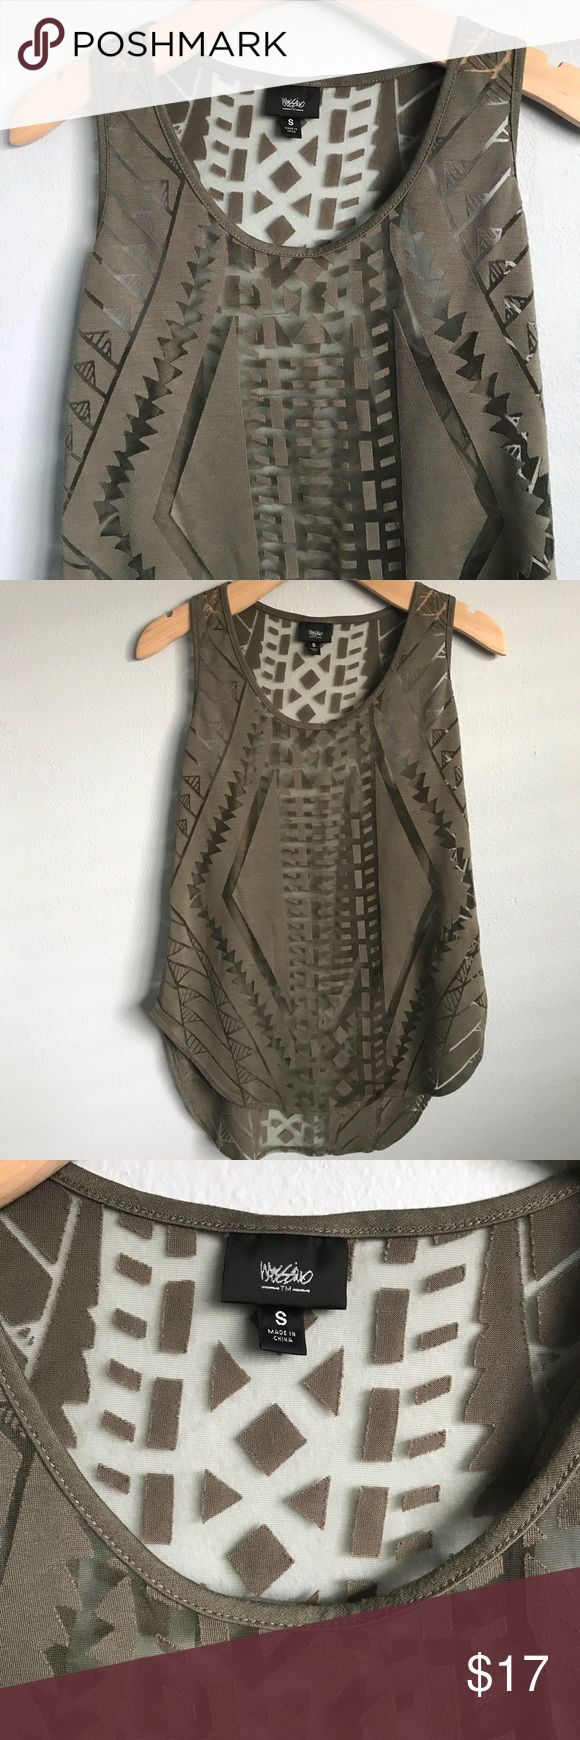 ❇️MOSSIMO❇️ Army green Aztec Print laser cut tank Awesome see-through Aztec laxer Print cut out tank! I'd totally rock this but it's too small for me now. Size is small but runs slightly oversized✨ Wear as a bikini Coverup or perfect with jean shorts and sandals! Great for a weekend get away🙌🏼 Mossimo Supply Co Tops Tank Tops